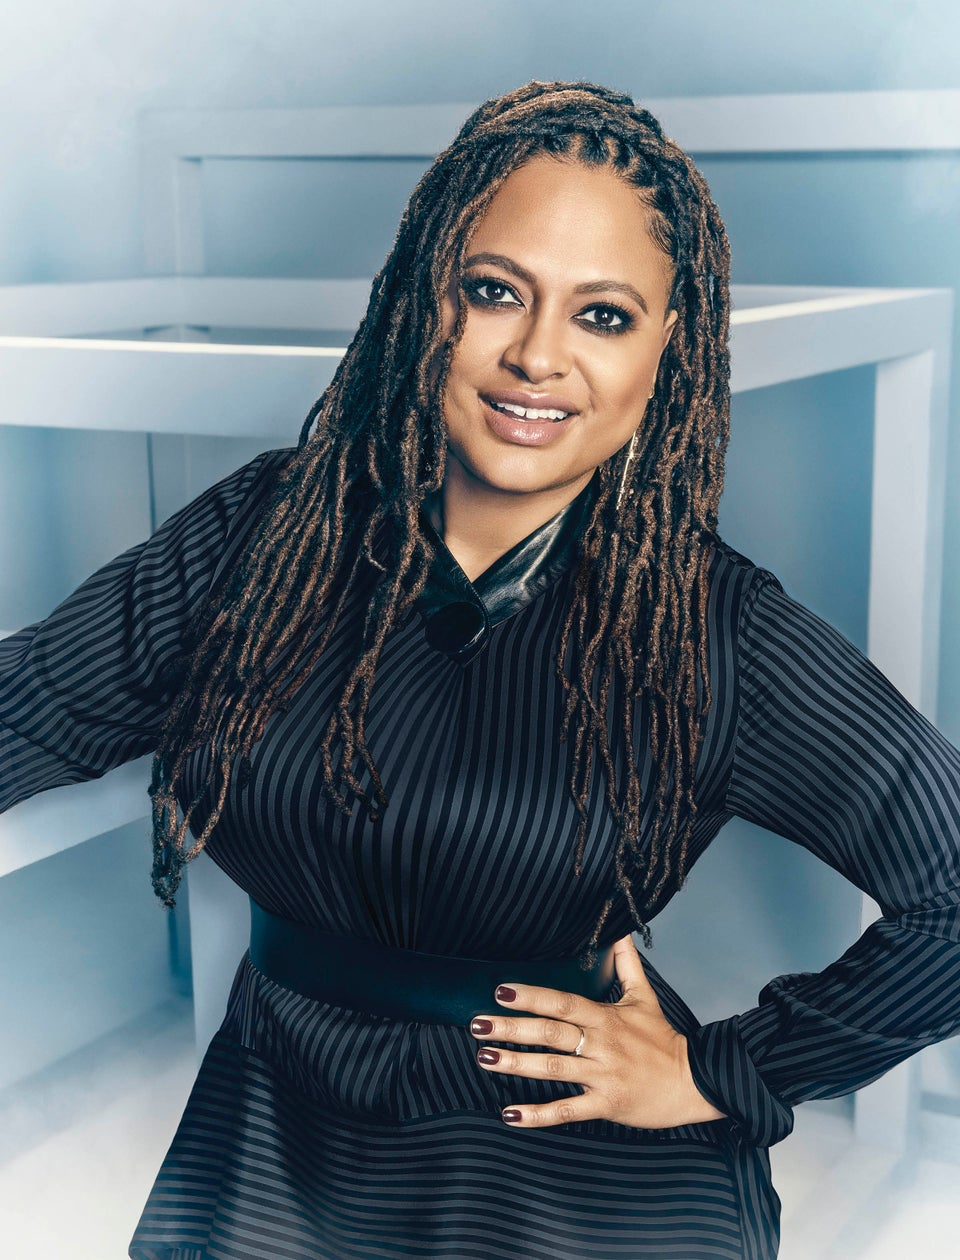 Ava DuVernay Set Up A Pop-Up Theater In Compton So Fans Could See 'A Wrinkle In Time'